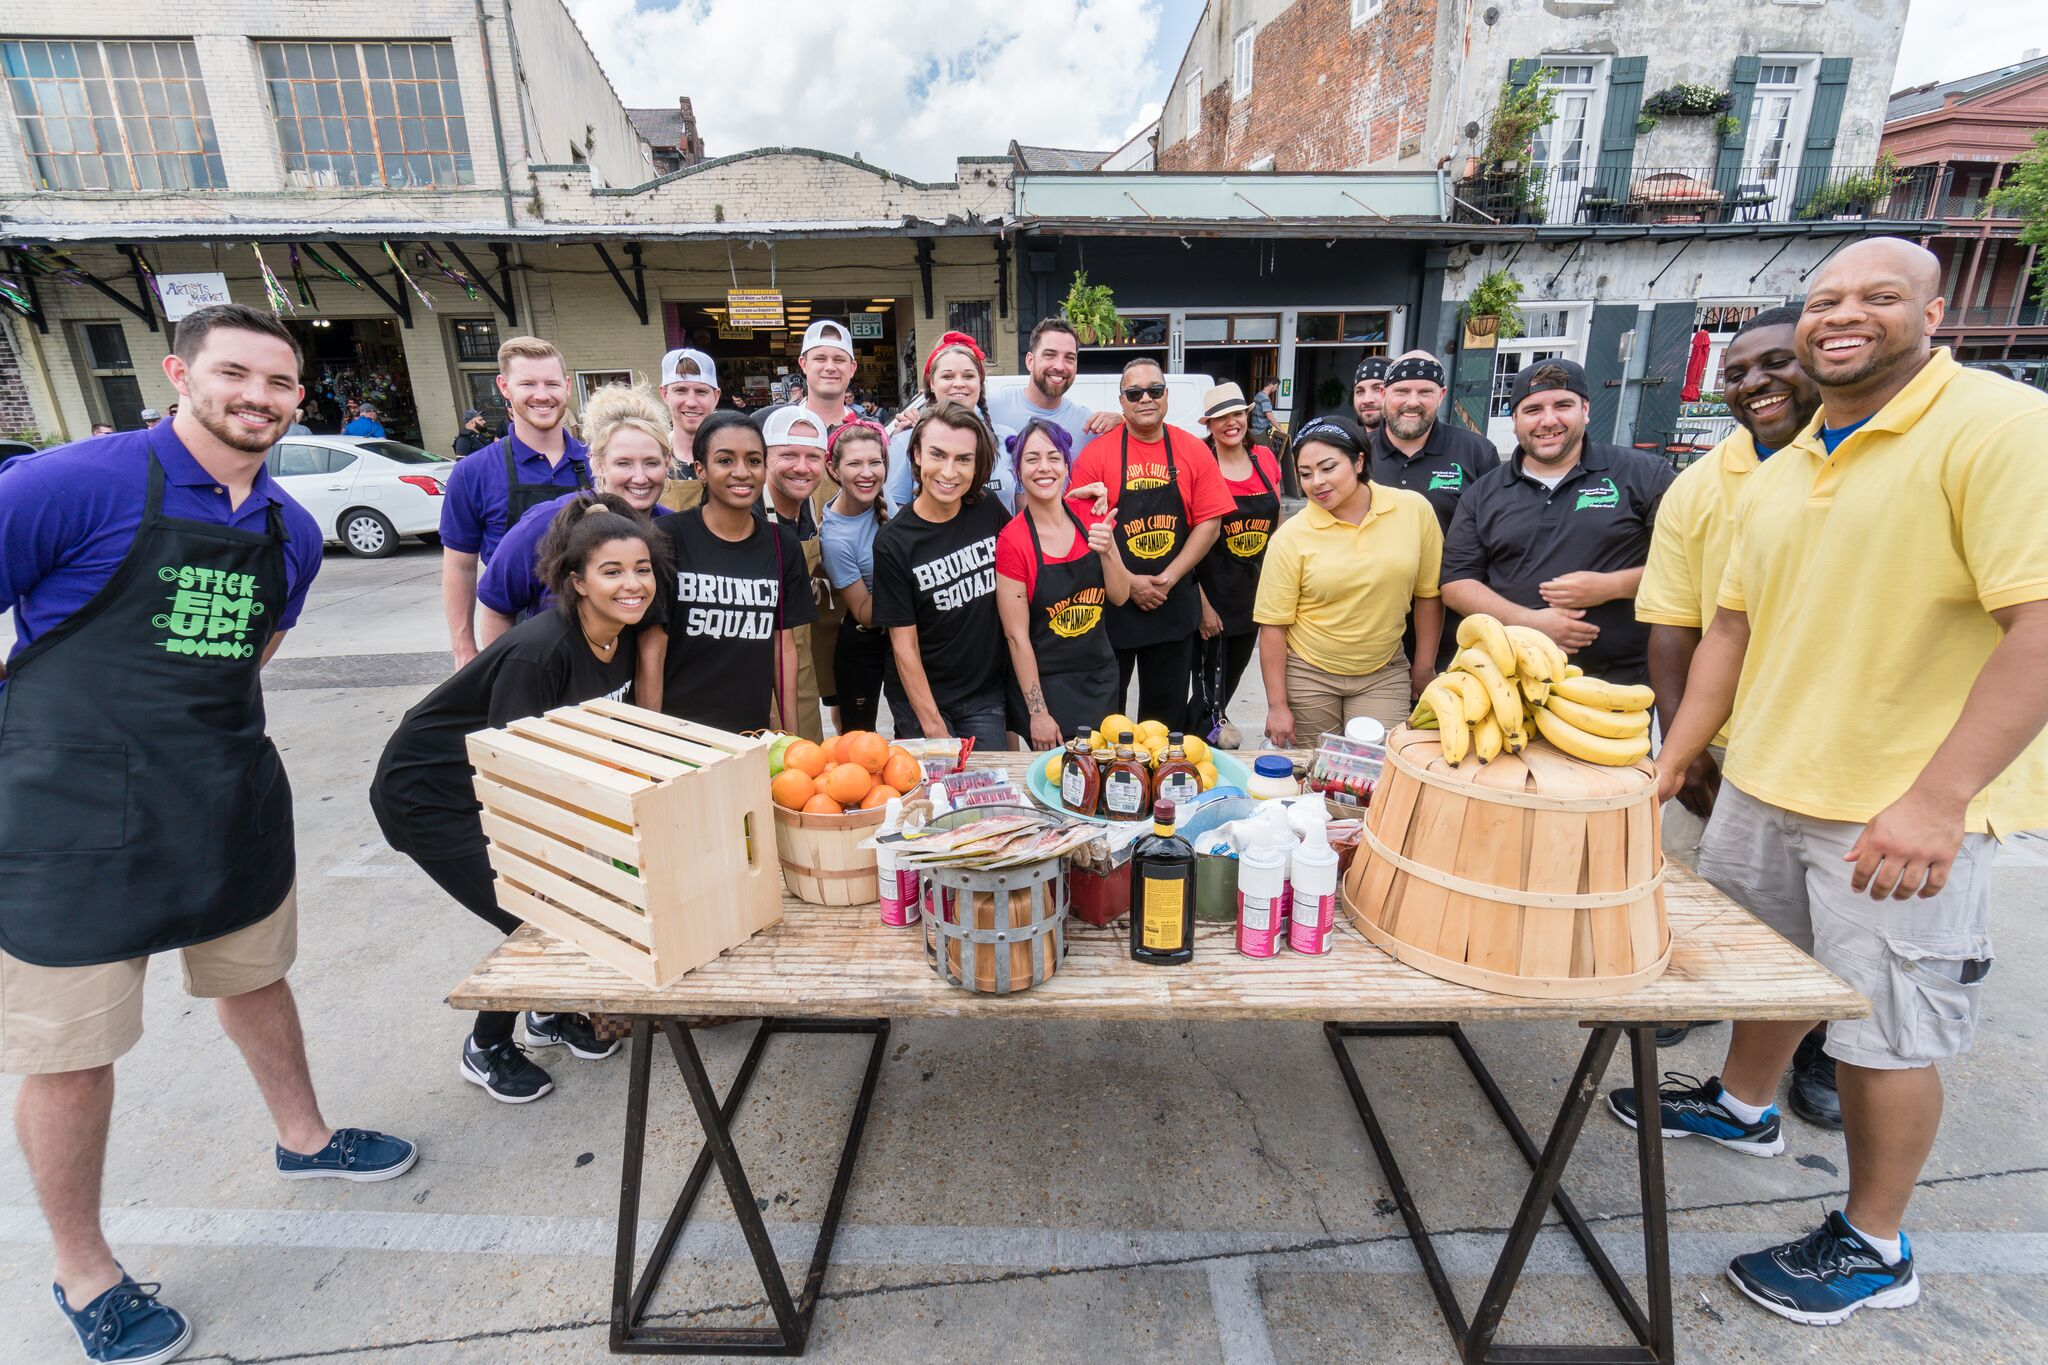 The teams of Food Network's The Great Food Truck Race